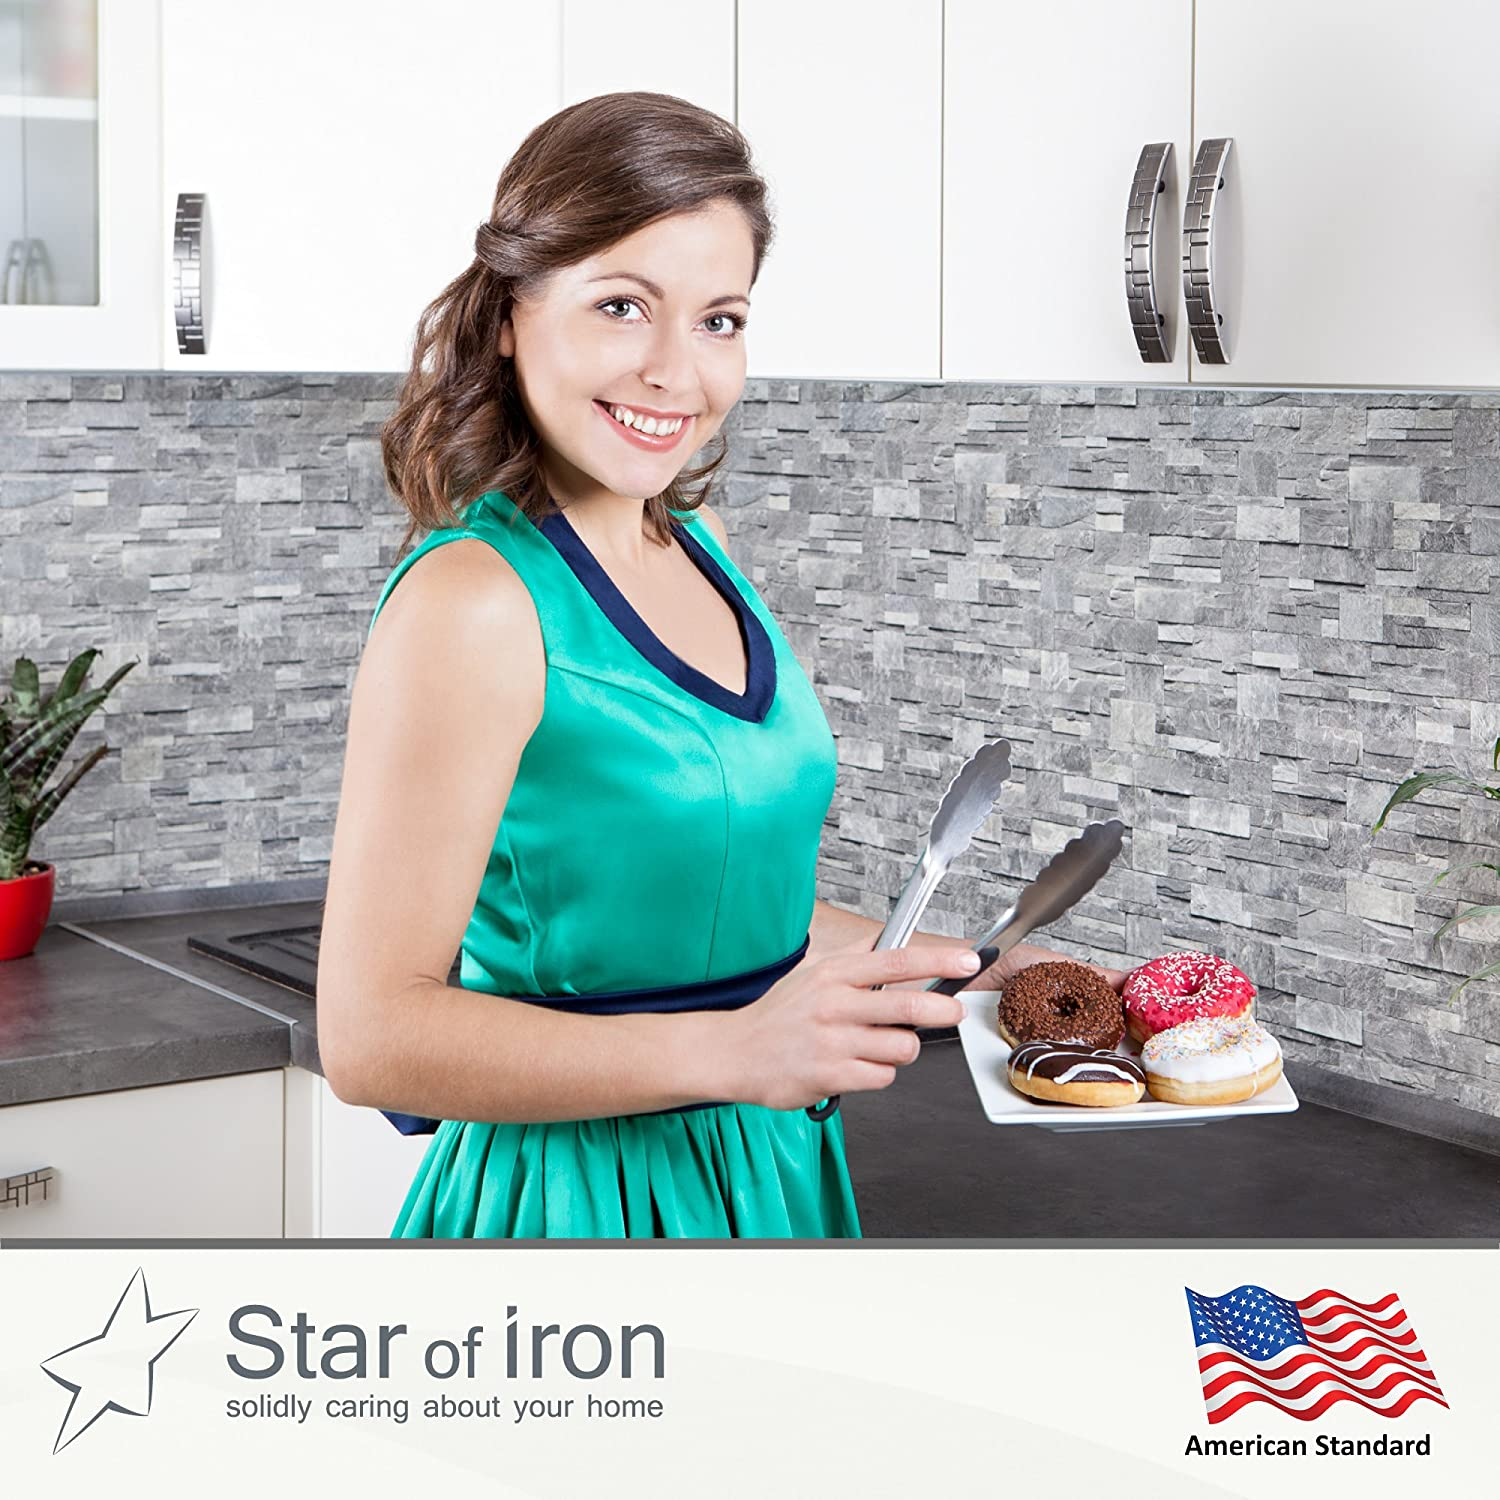 tongs by star of iron kitchen tongs set of 2 serving